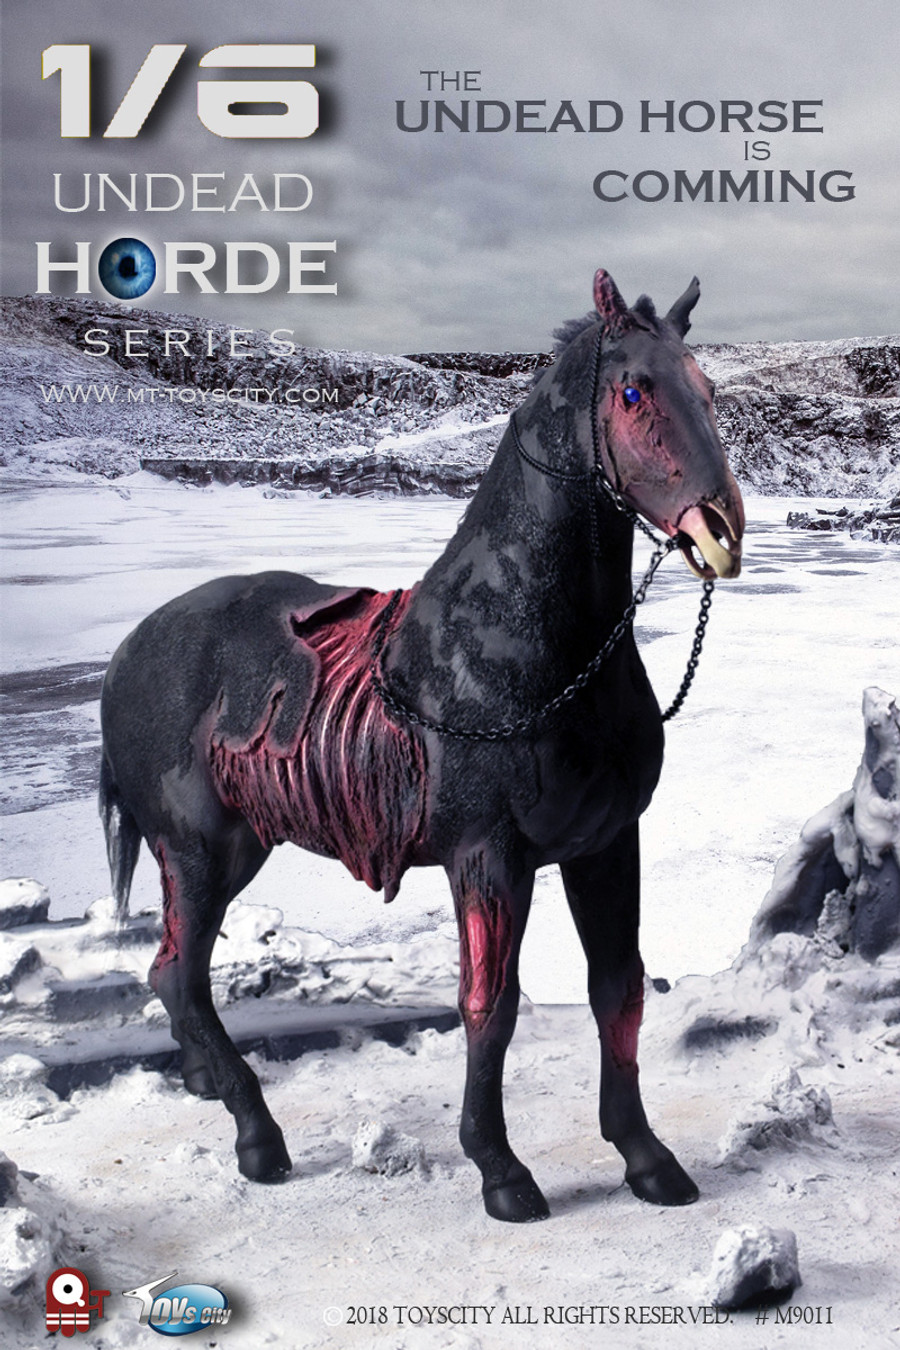 Toys City - Undead Horde Series - The Undead Horse